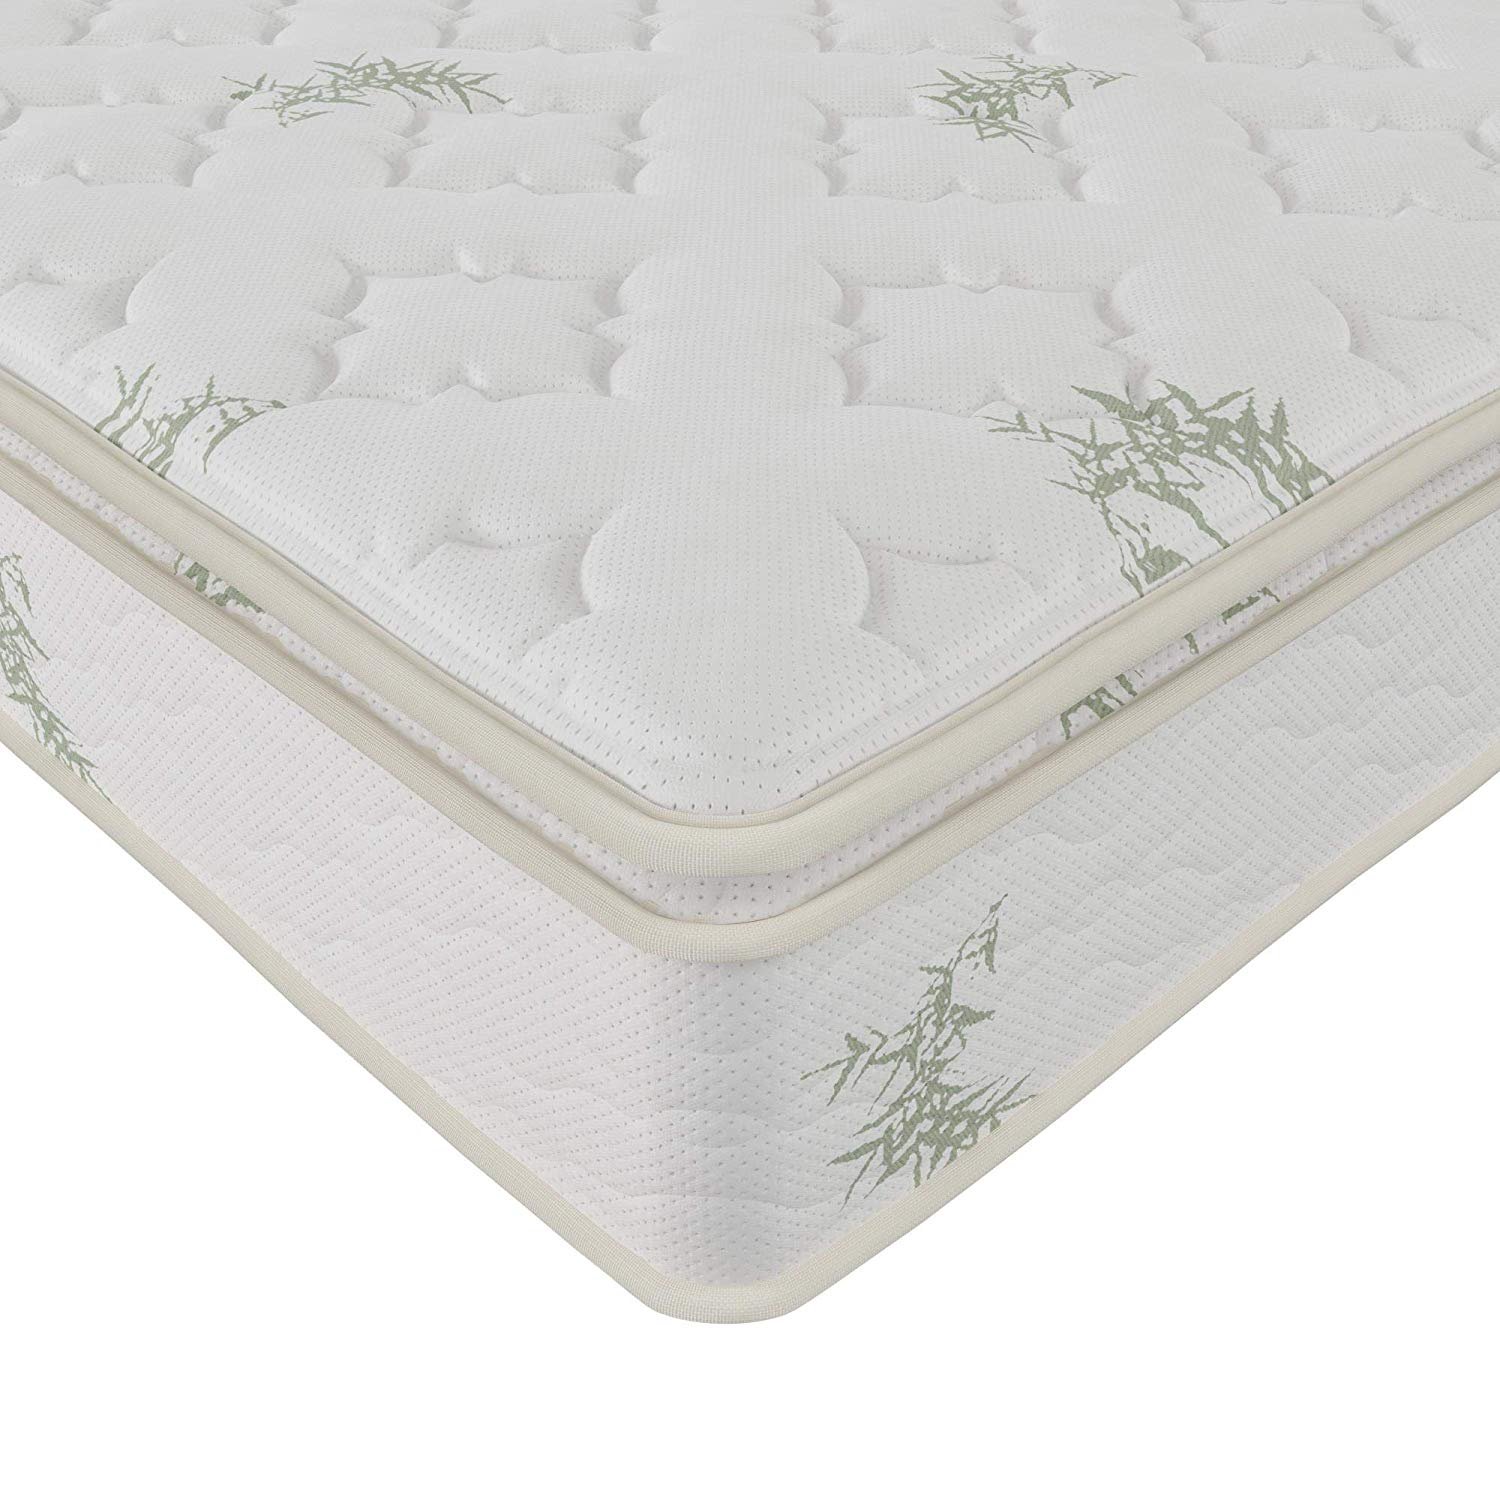 Customized Color Color and Eco-Friendly Bamboo fabric pillow top gel infused memory foam pocket spring hybrid mattress - Jozy Mattress   Jozy.net